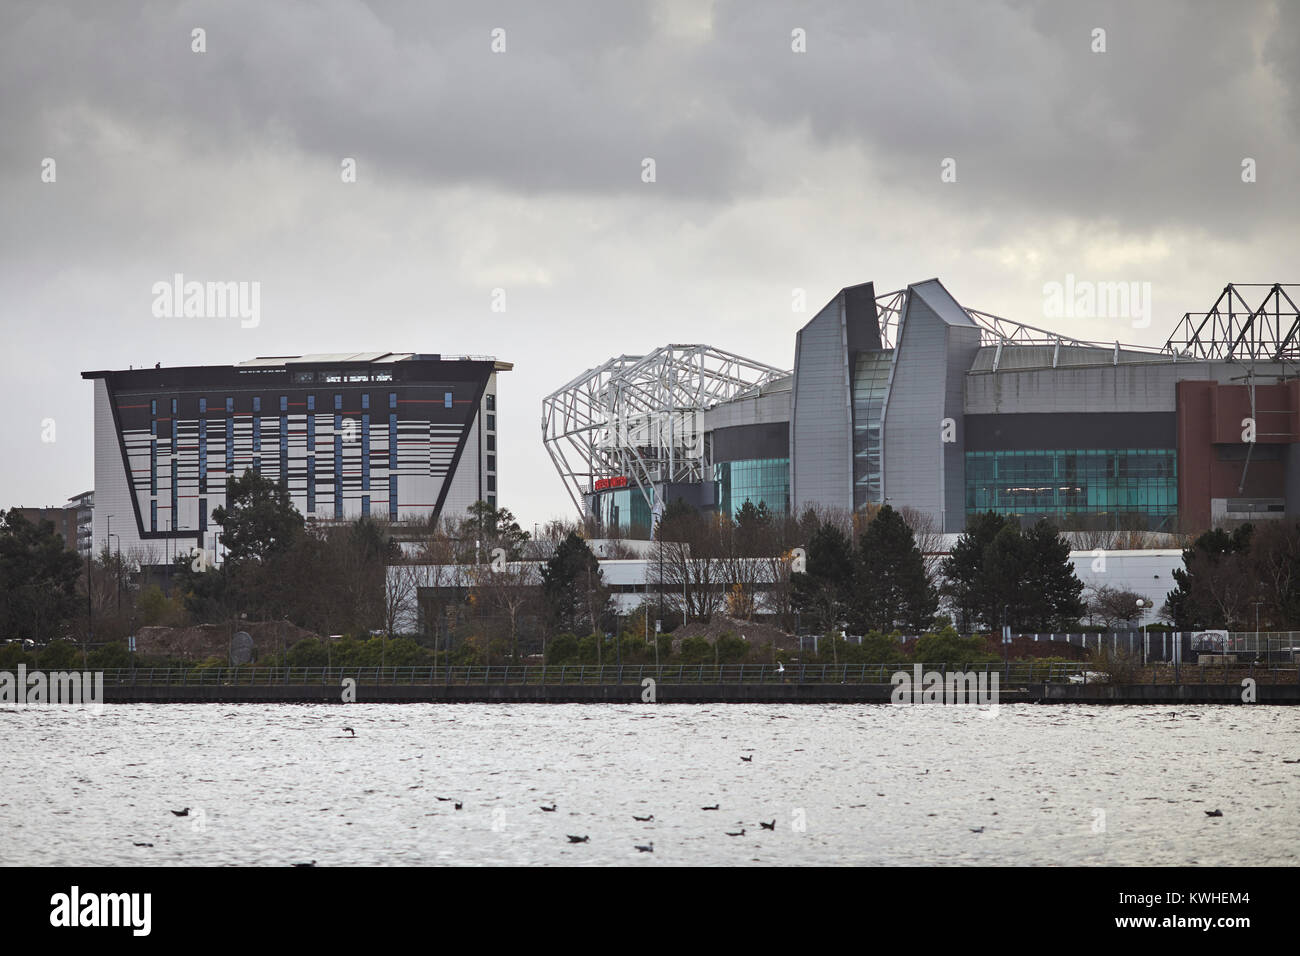 Hotel Football and Old Trafford stadium, home of Manchester United Football Club seen across the Ship Canal in Salford - Stock Image